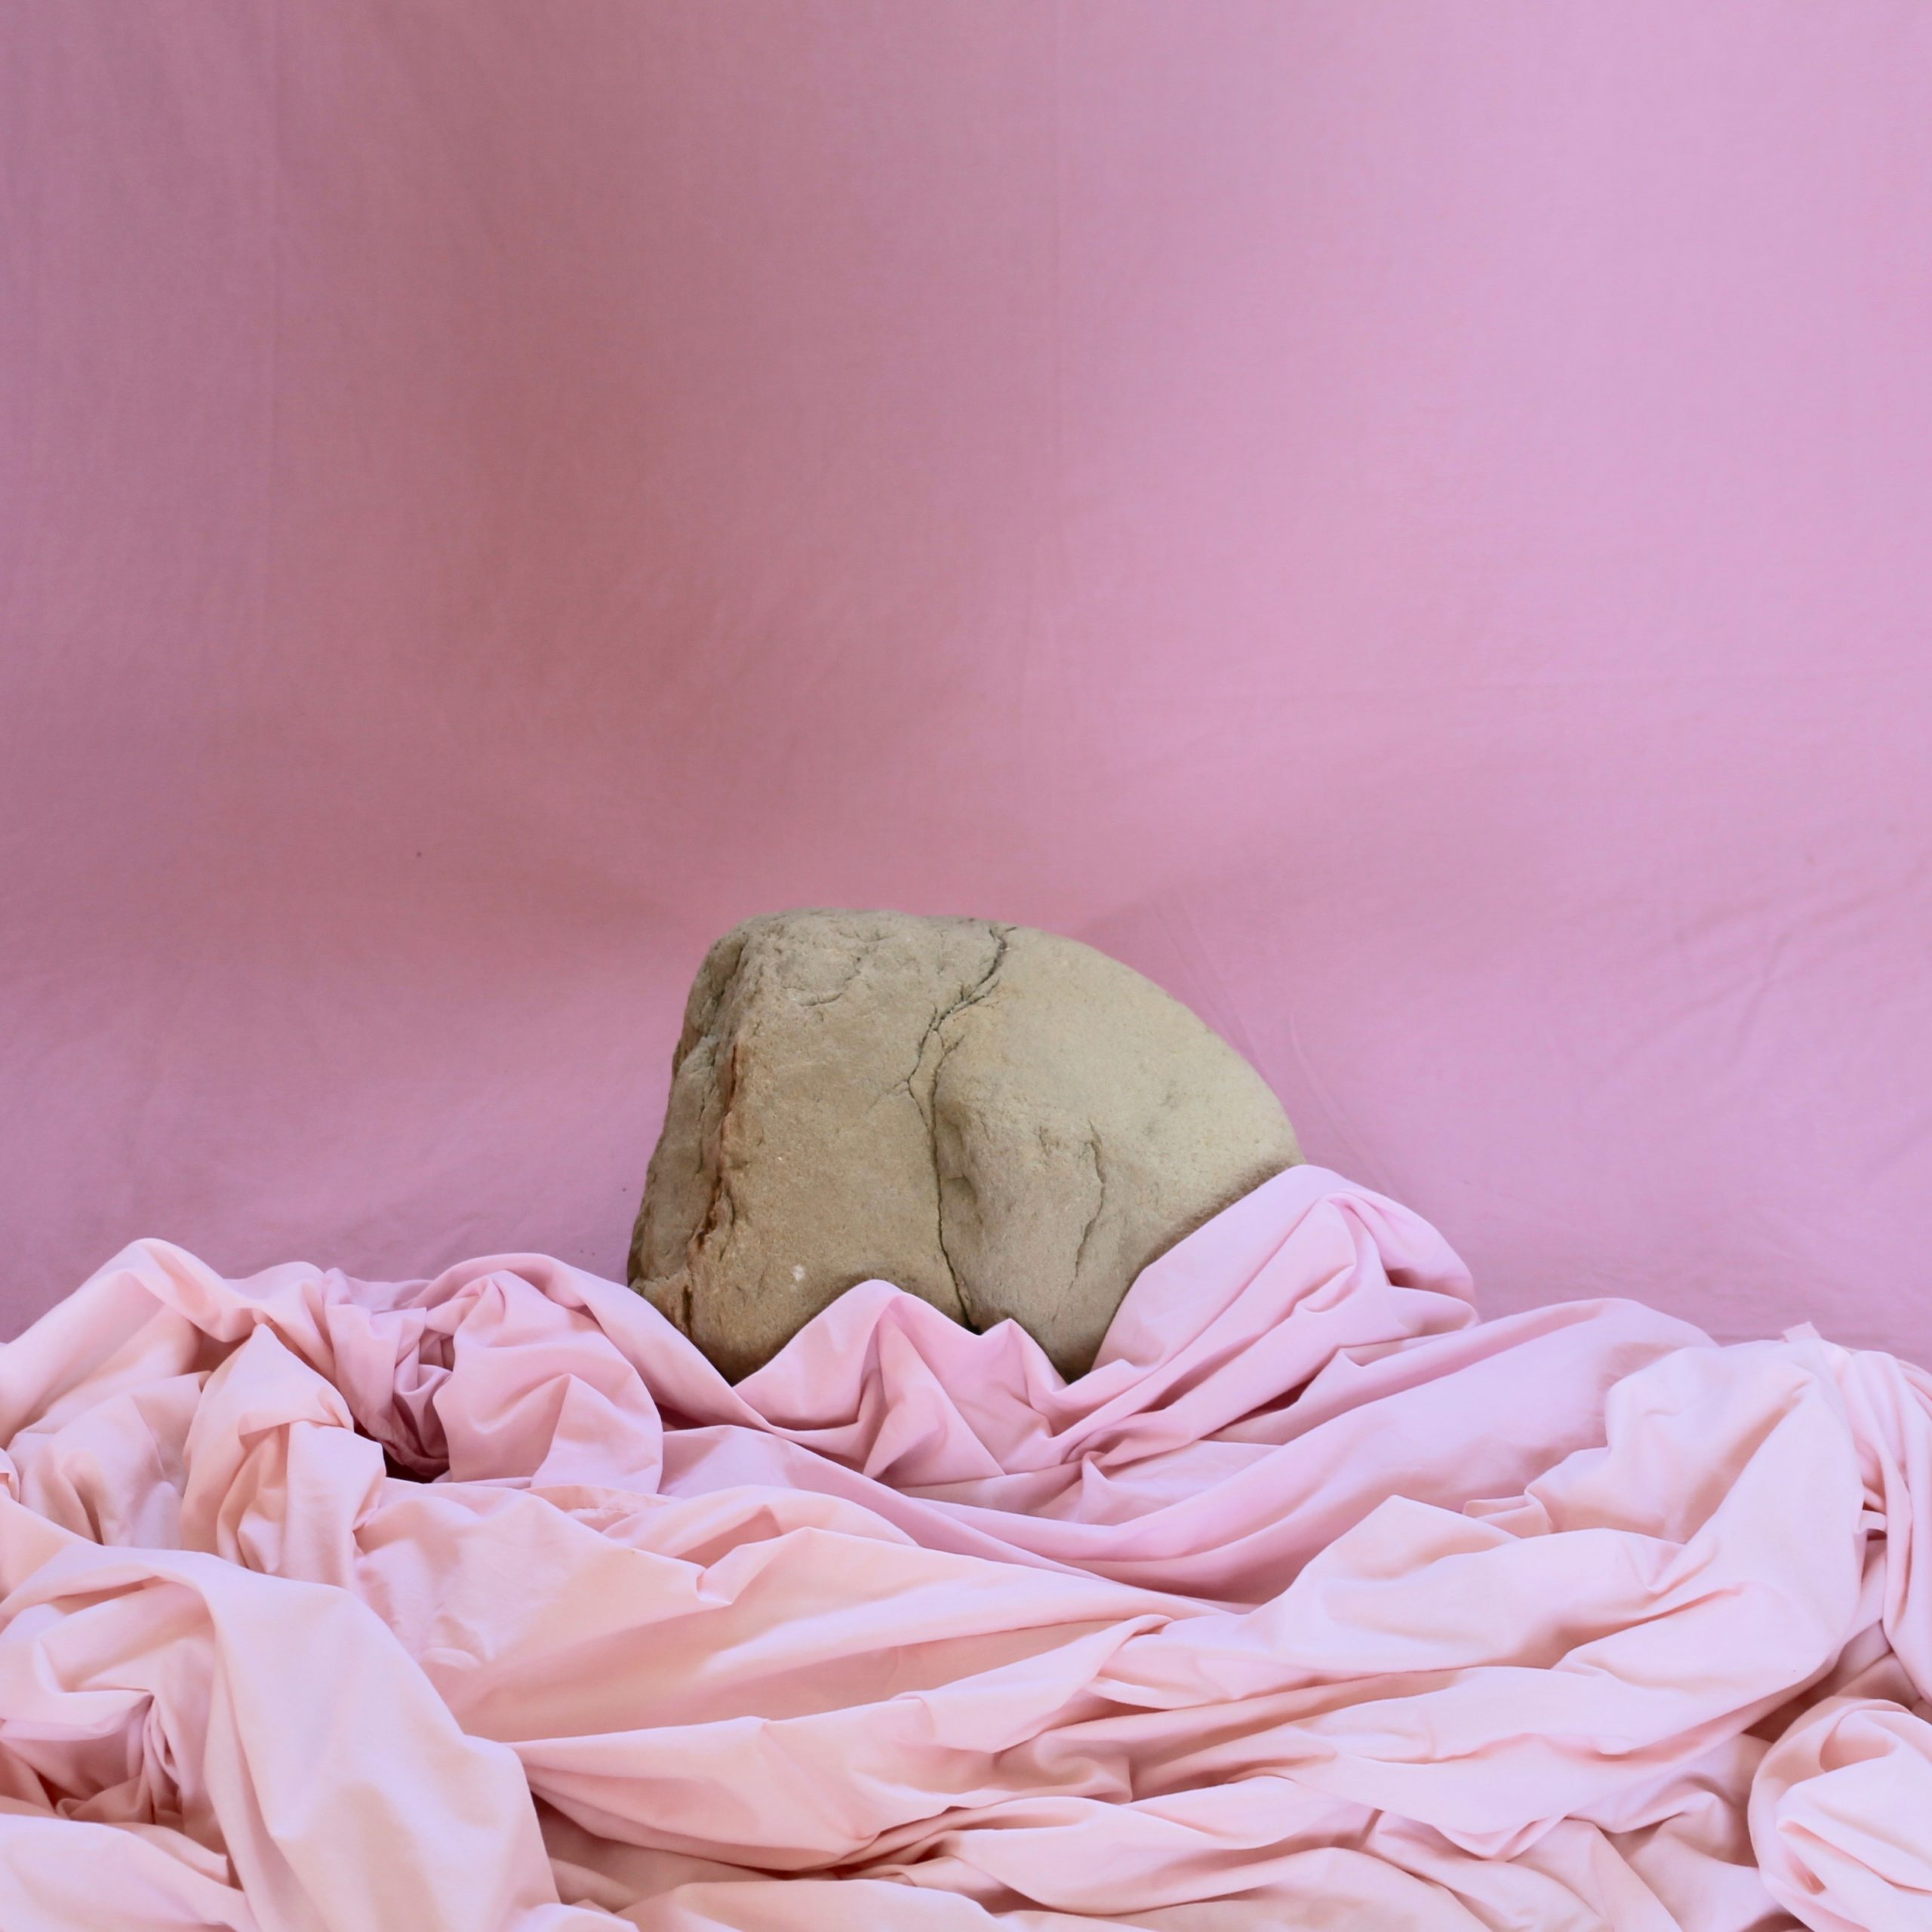 A grey rock in the shape of an arse propped up theatrically against a dusty pink wall and draped in pink sheets.